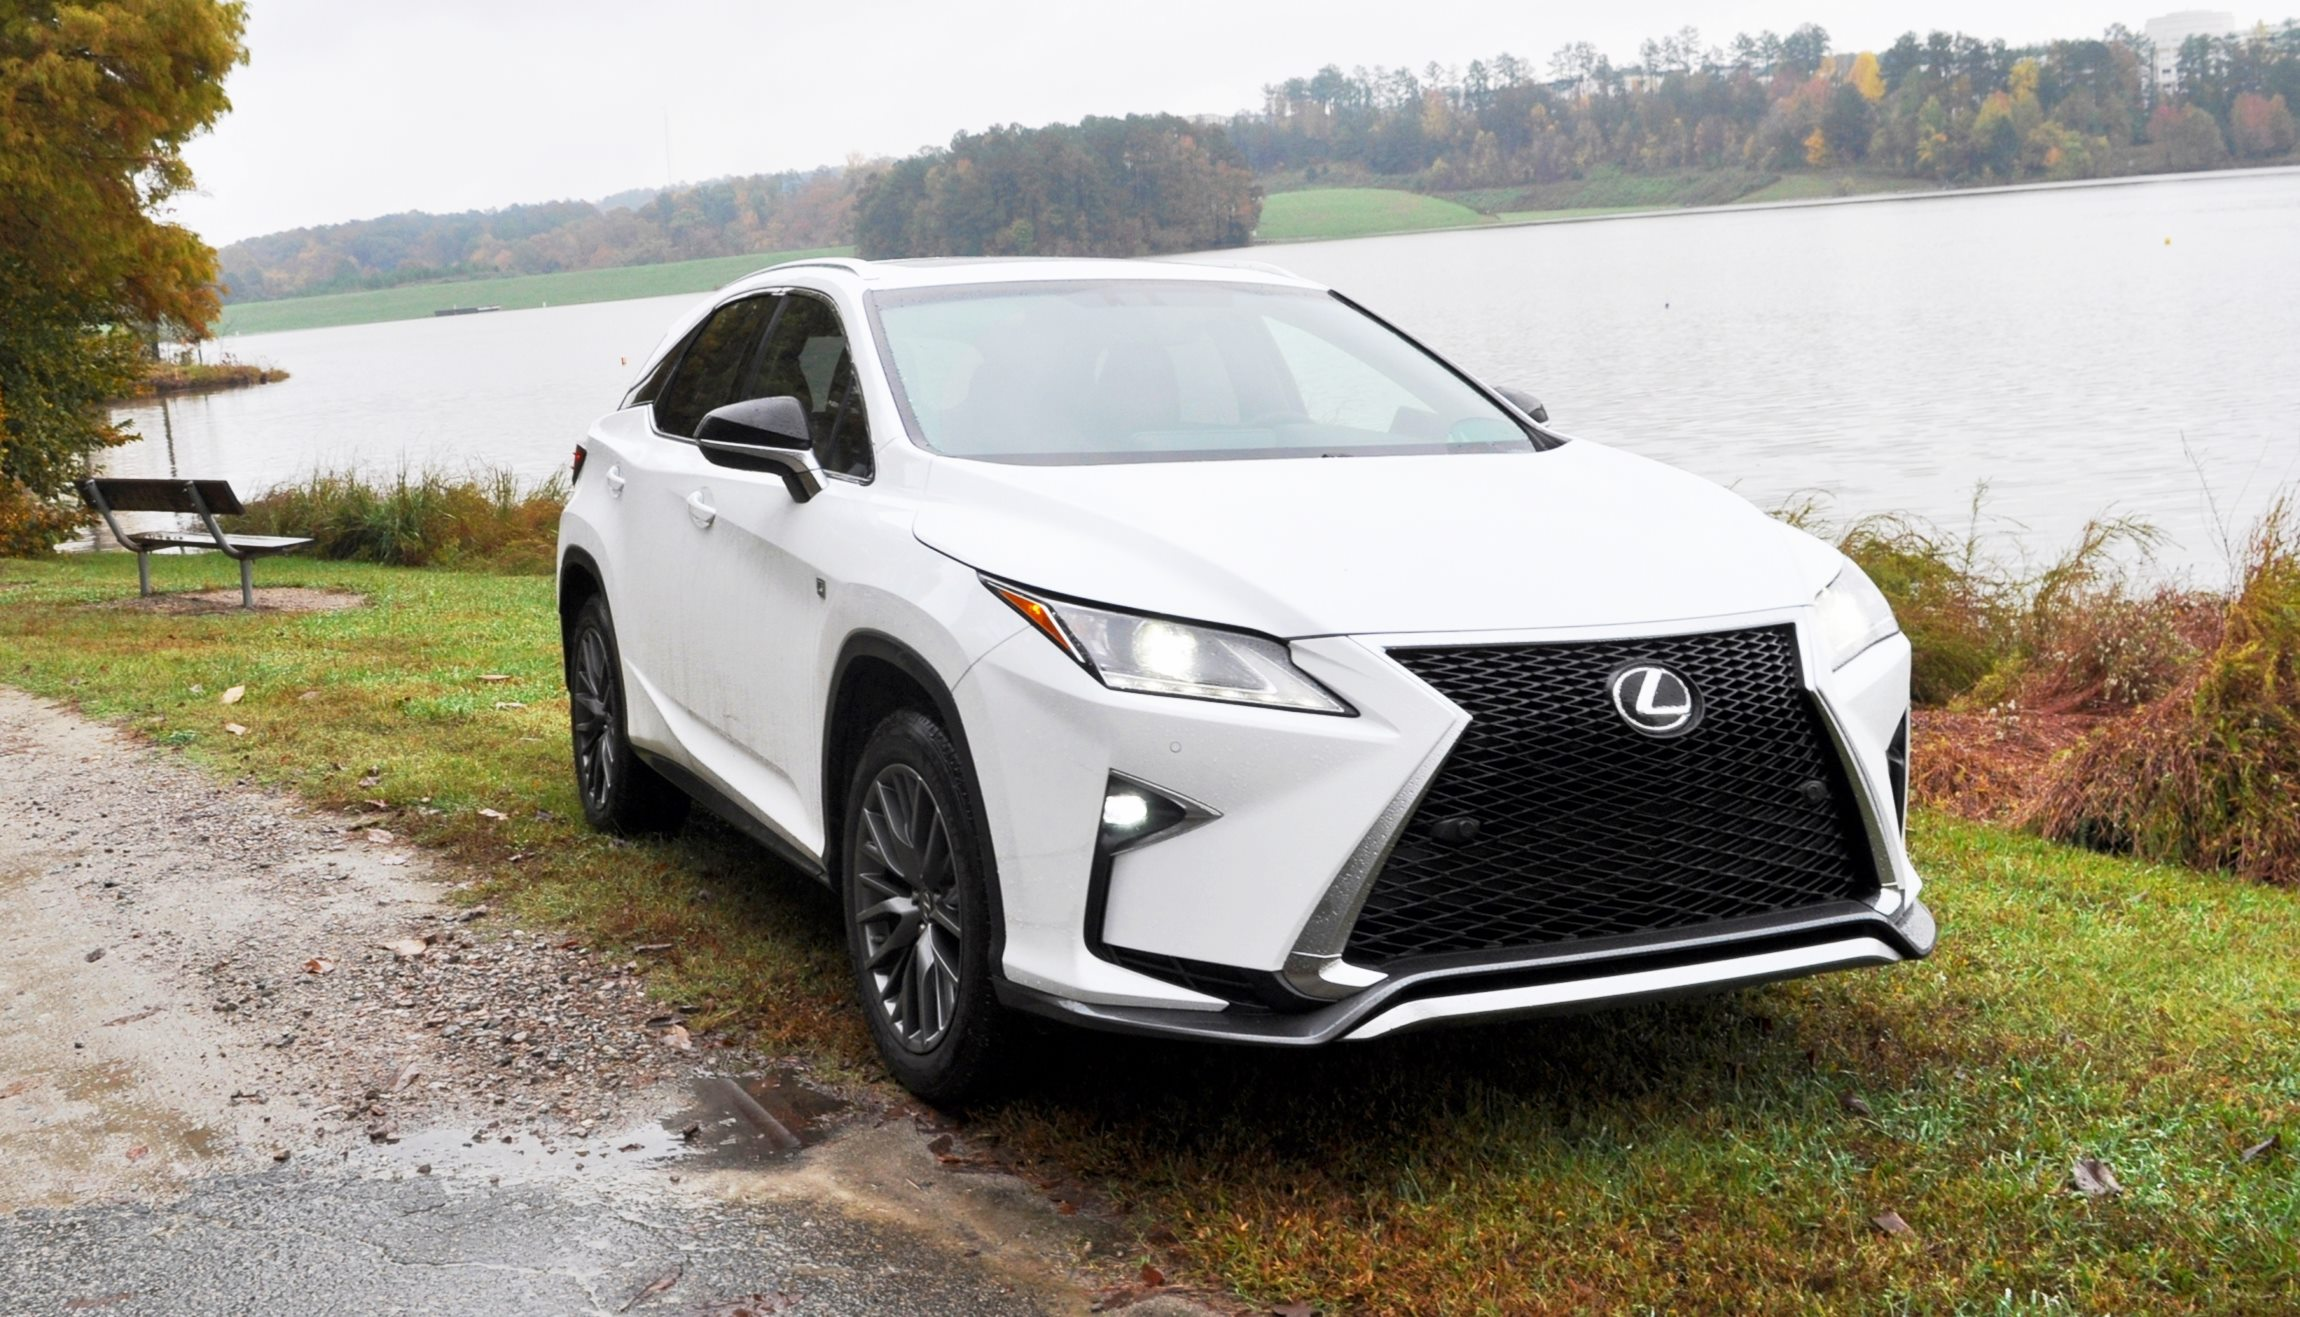 First Drive Videos 2016 Lexus RX350 and RX450h F Sport